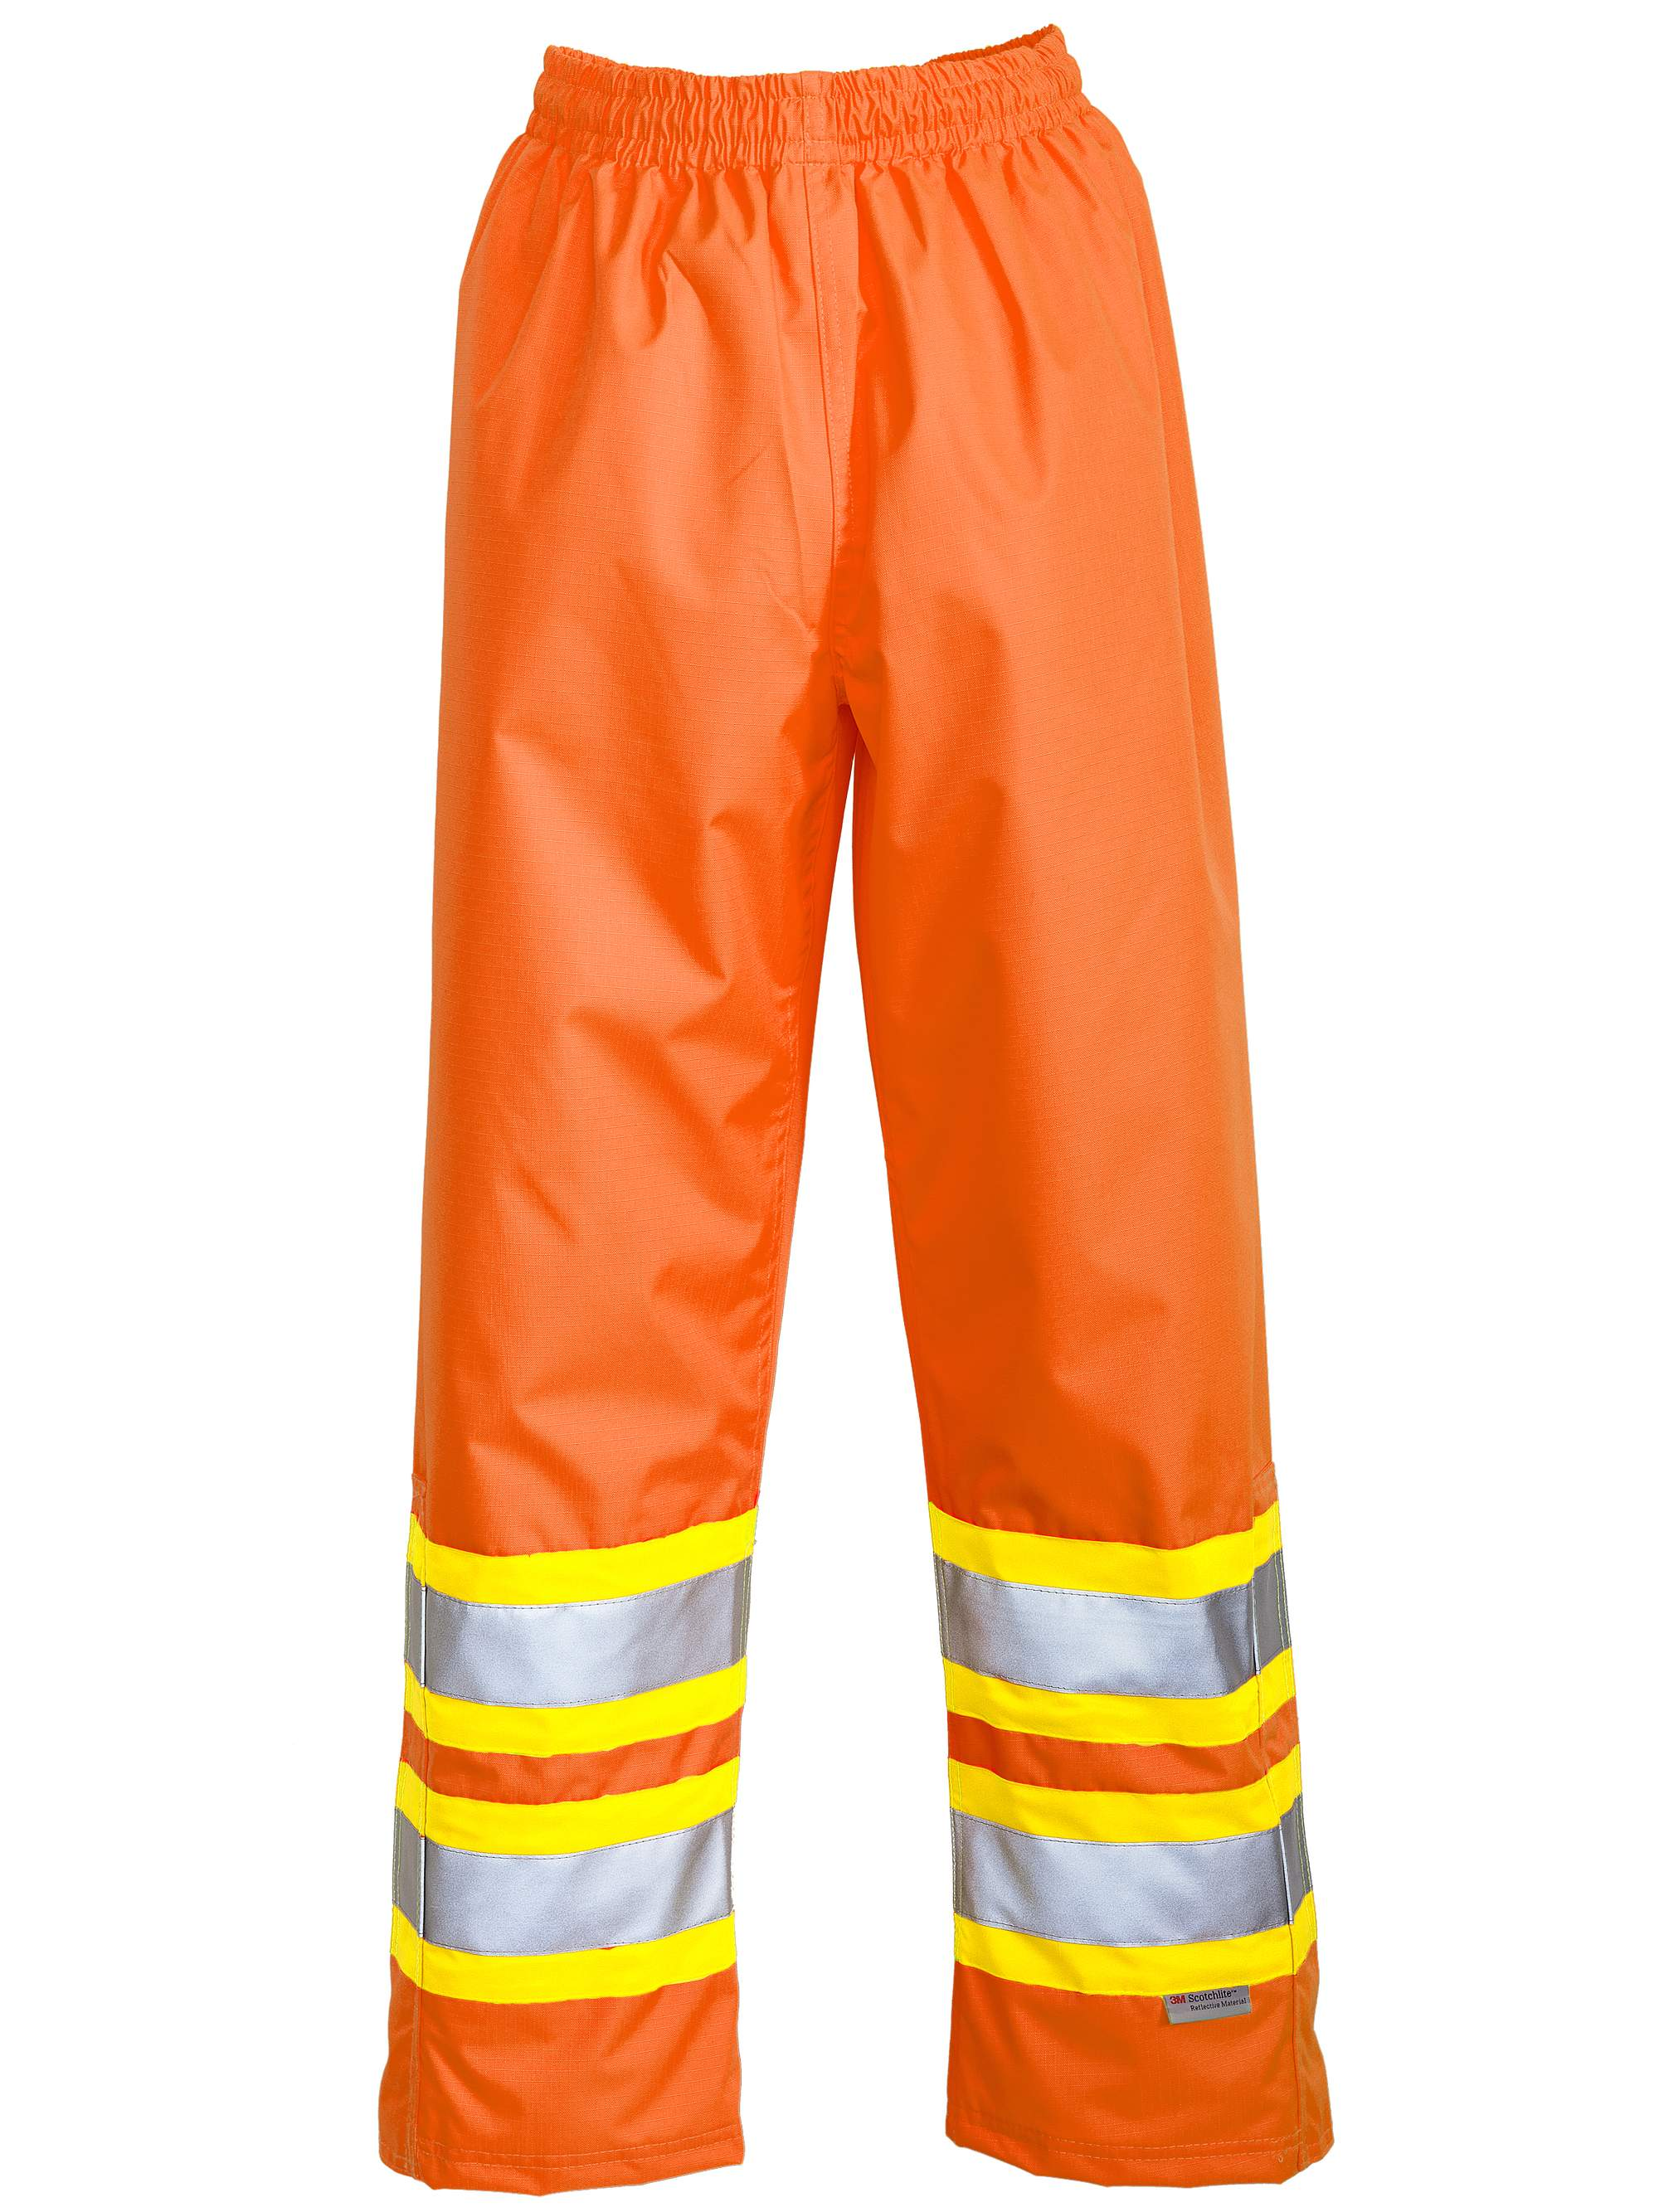 Men's Professional THOR 300D Trilobal Rip-stop Safety Waist Pants